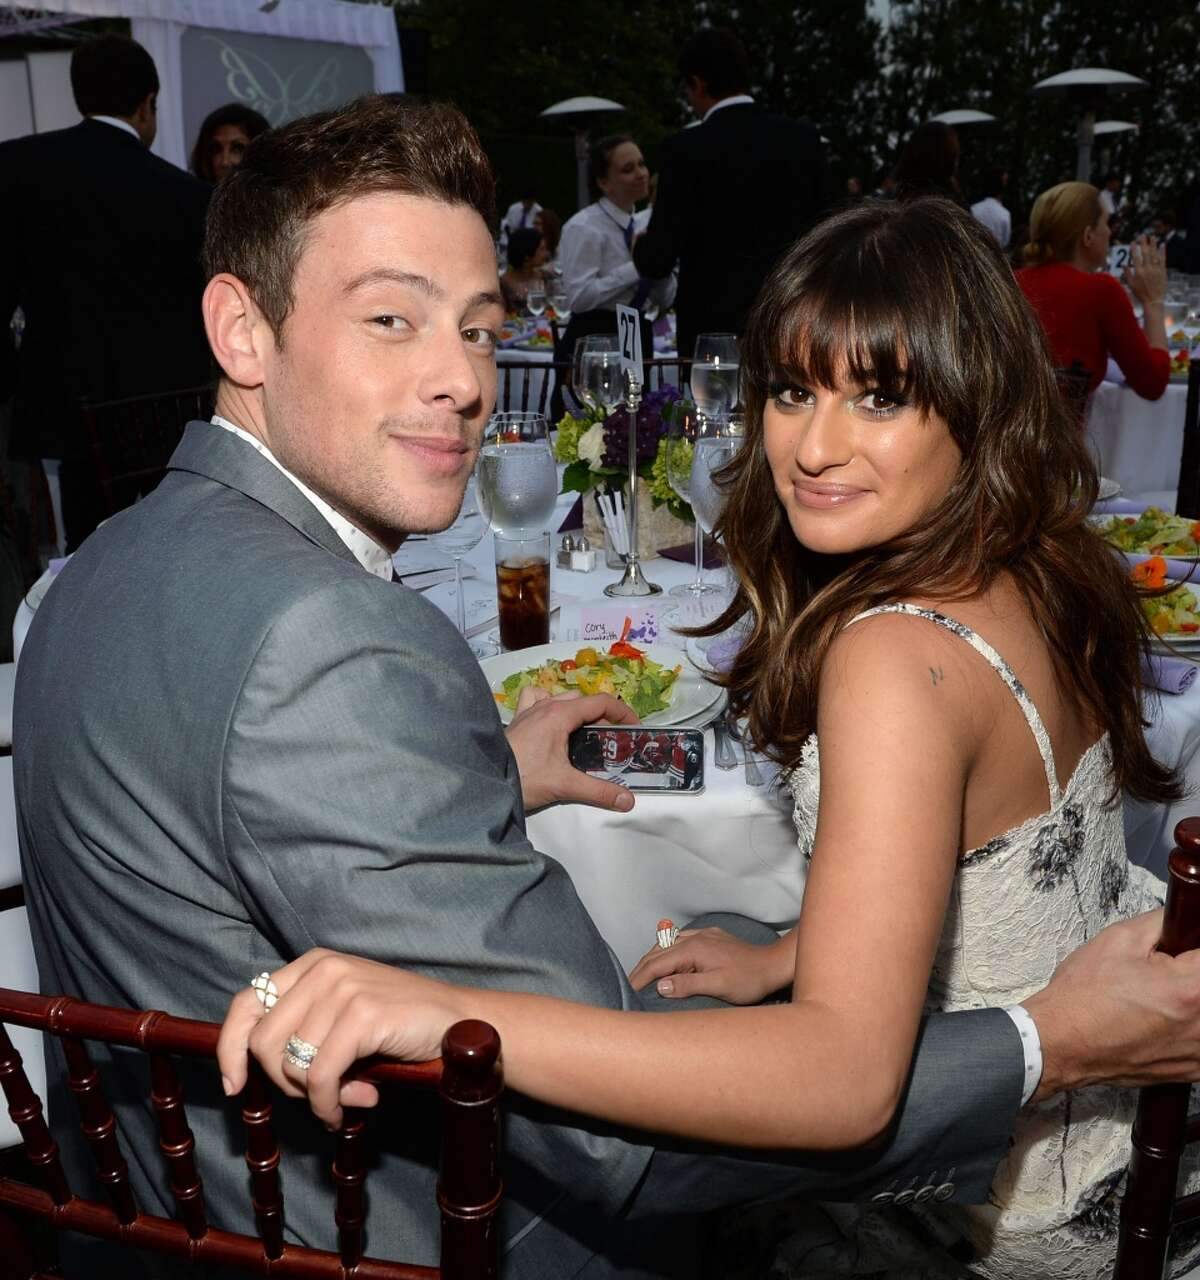 LOS ANGELES, CA - JUNE 08: Actors Cory Monteith(L) and Lea Michele attend the 12th Annual Chrysalis Butterfly Ball on June 8, 2013 in Los Angeles, California. (Photo by Michael Buckner/Getty Images for Chrysalis)